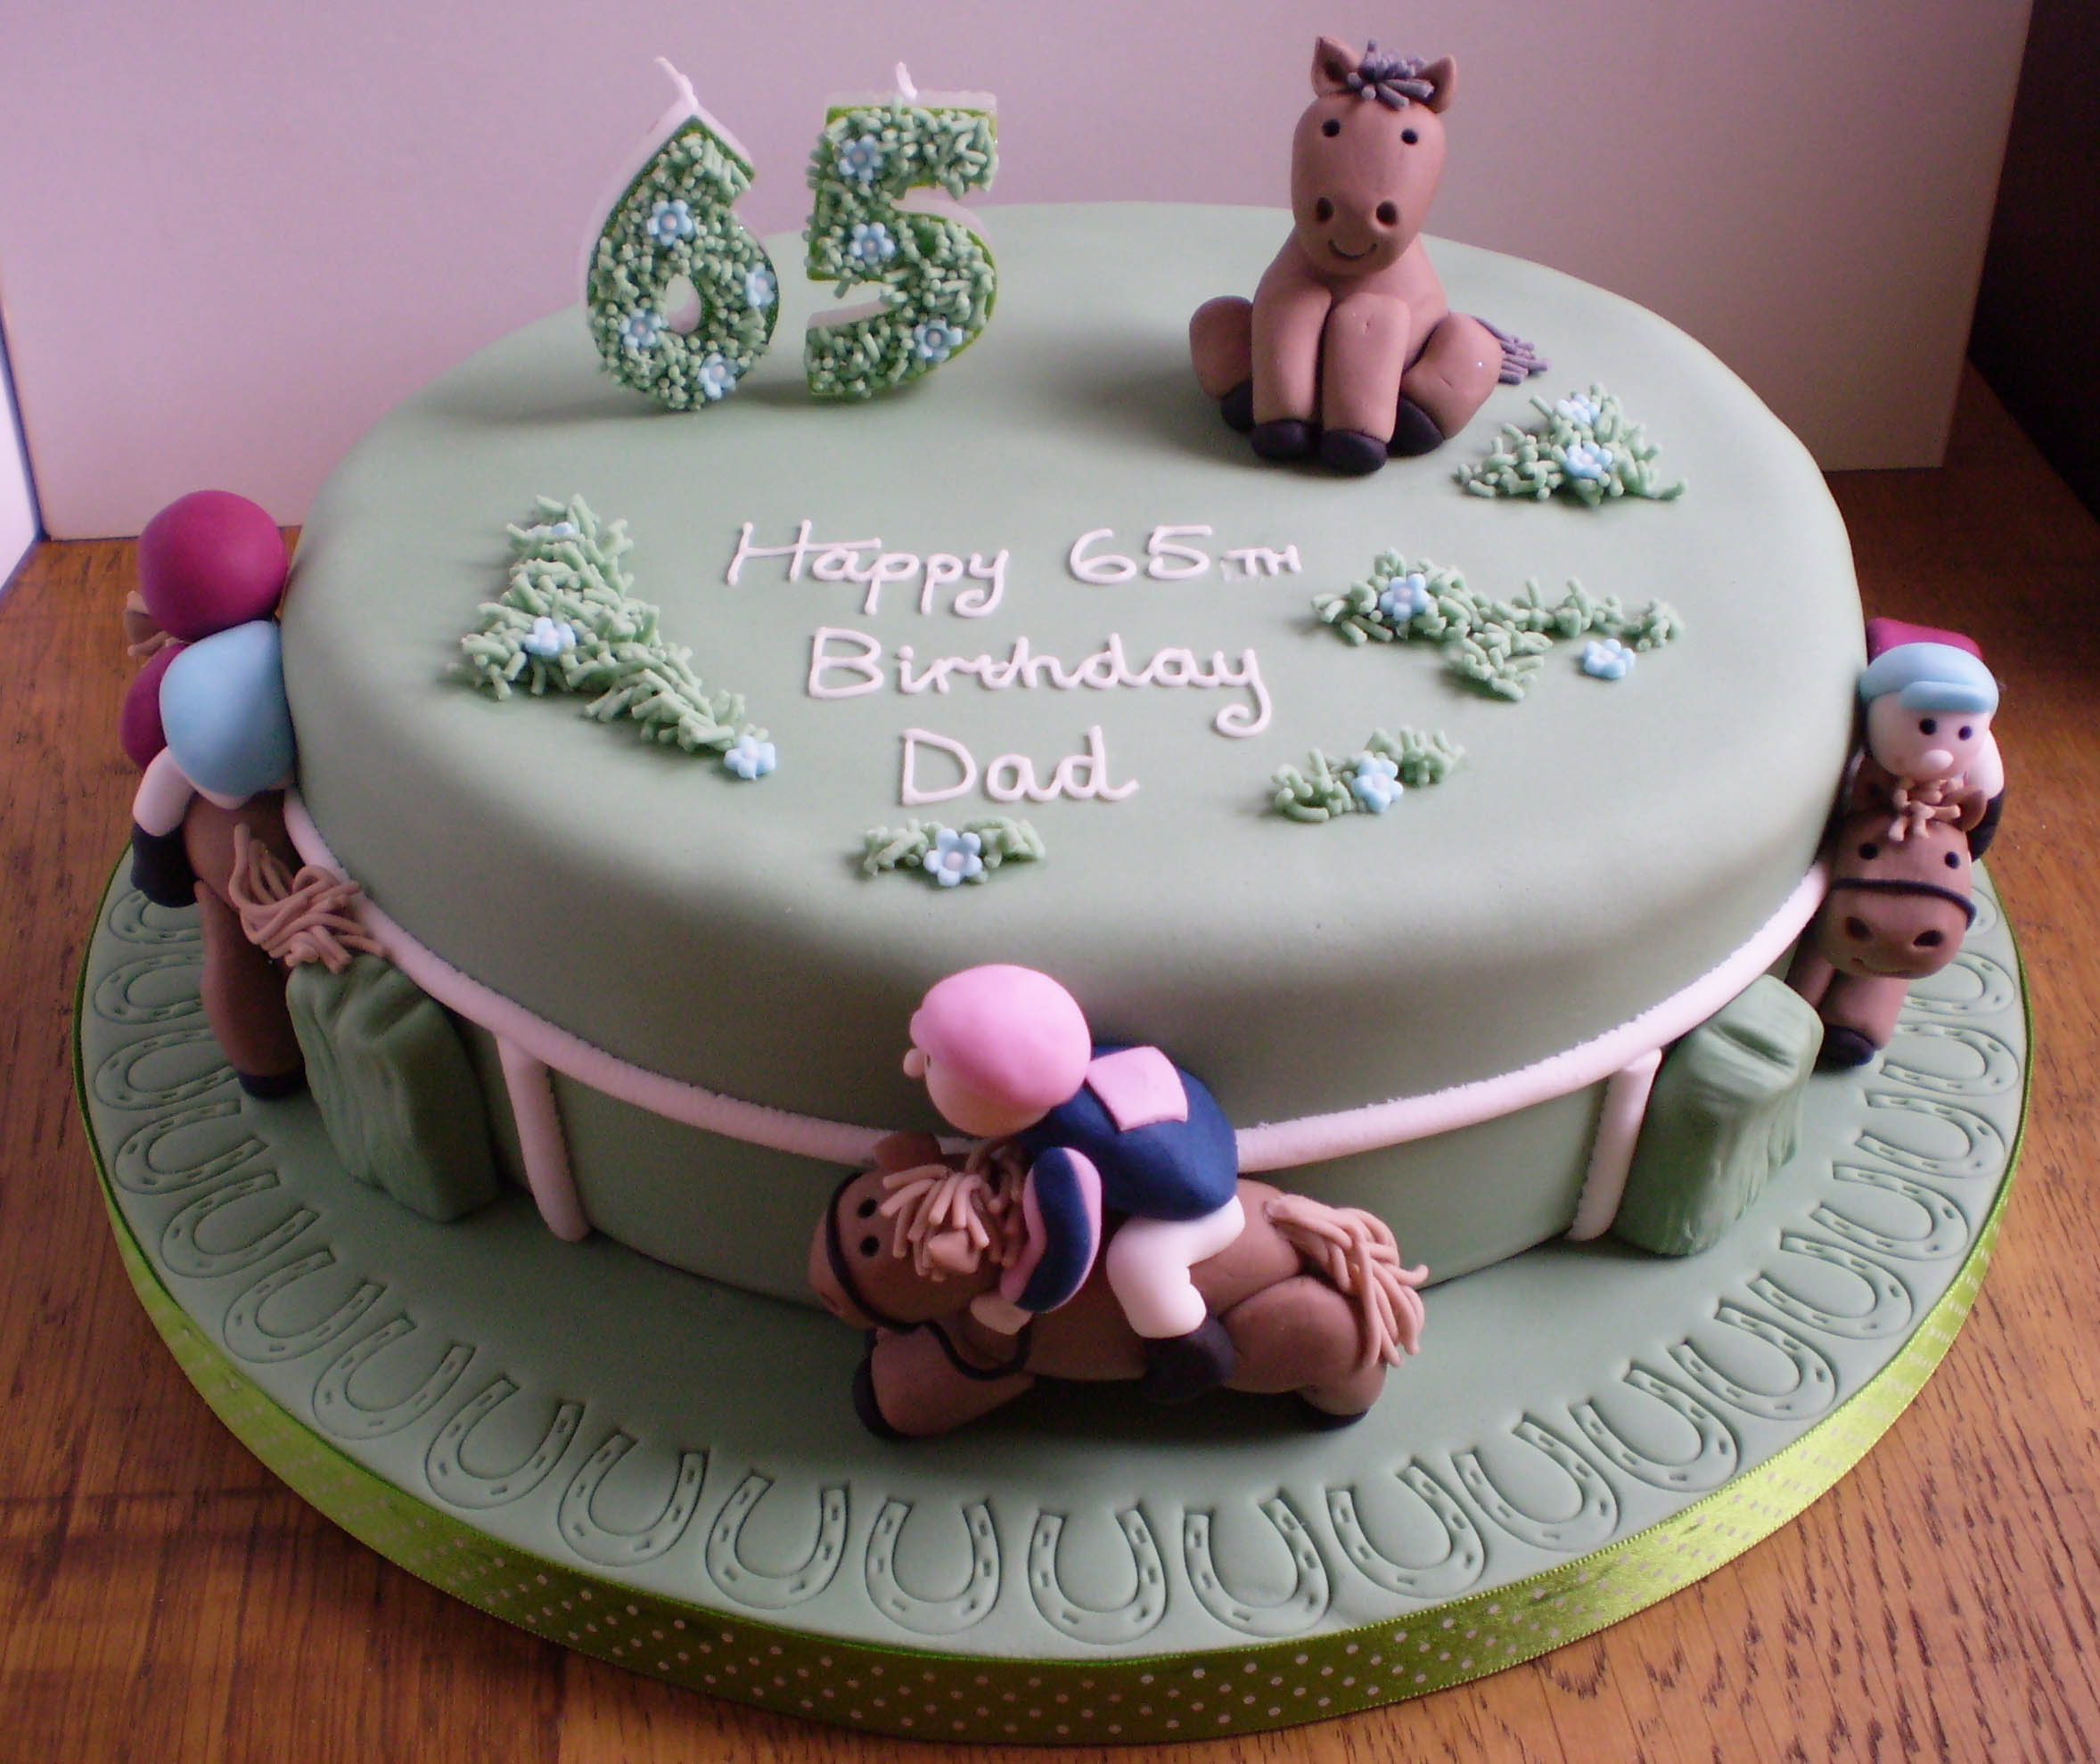 Cake Designs For Birthdays : Horse Birthday Cakes   Decoration Ideas Little Birthday ...